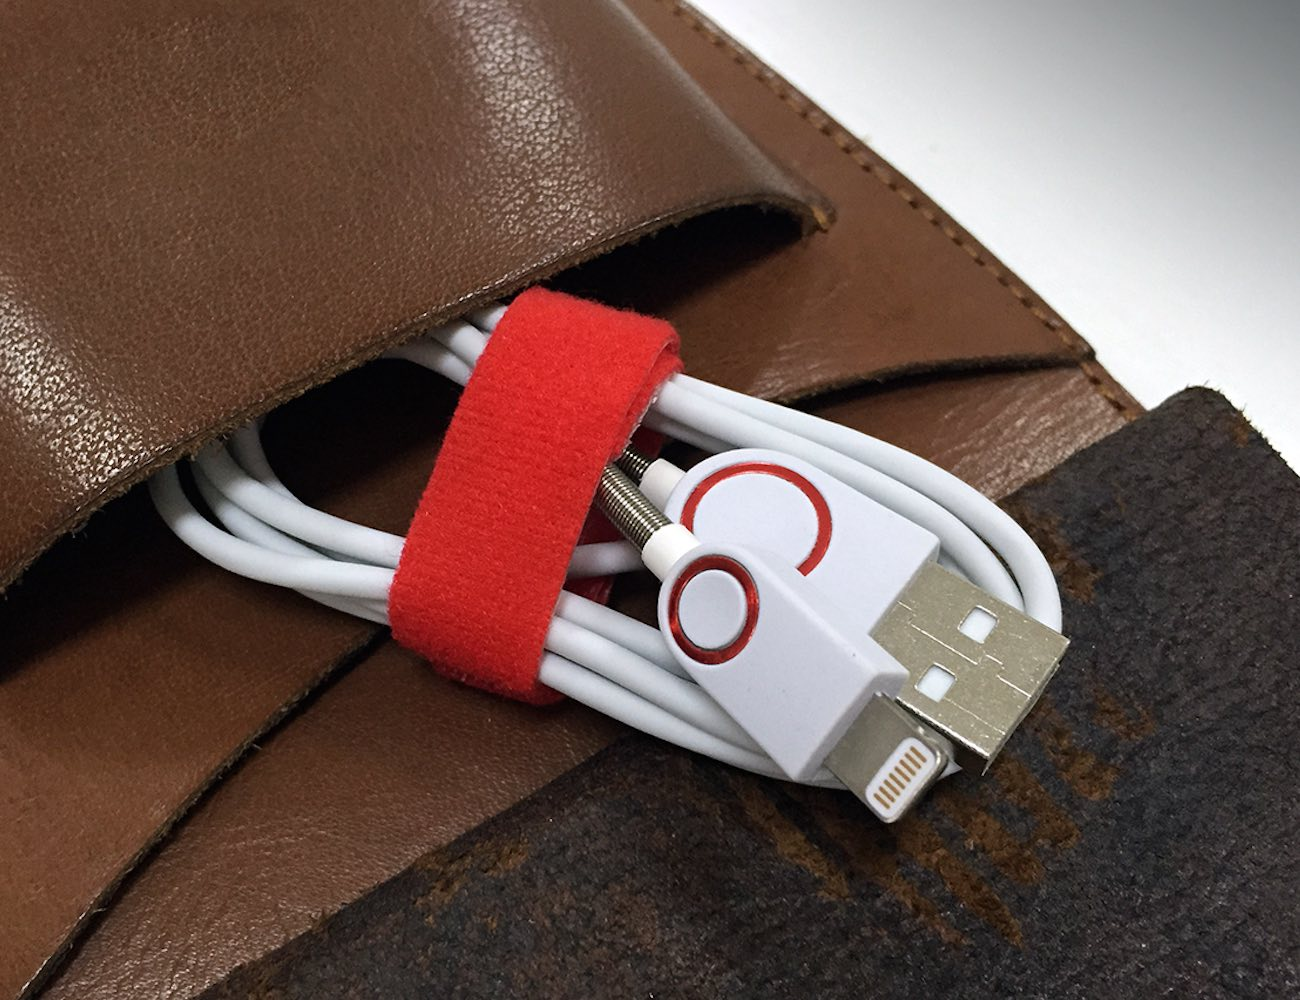 Homtime O2 Lightning Cable: Your Handy Iproduct Power Partner